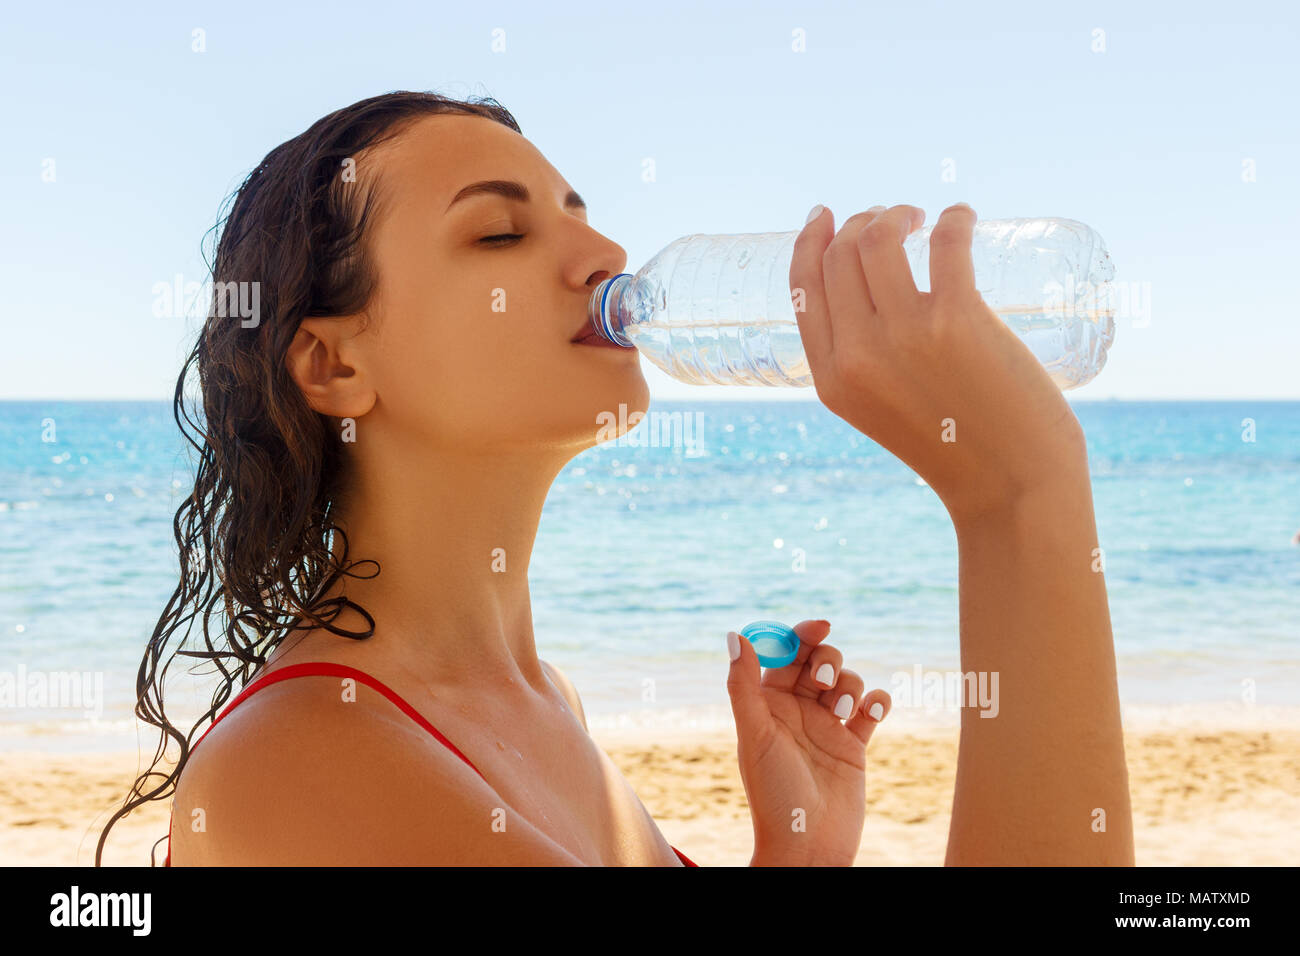 Young woman in a red swimsuit, drinking sparkling water from a transparent bottle on the beach. - Stock Image